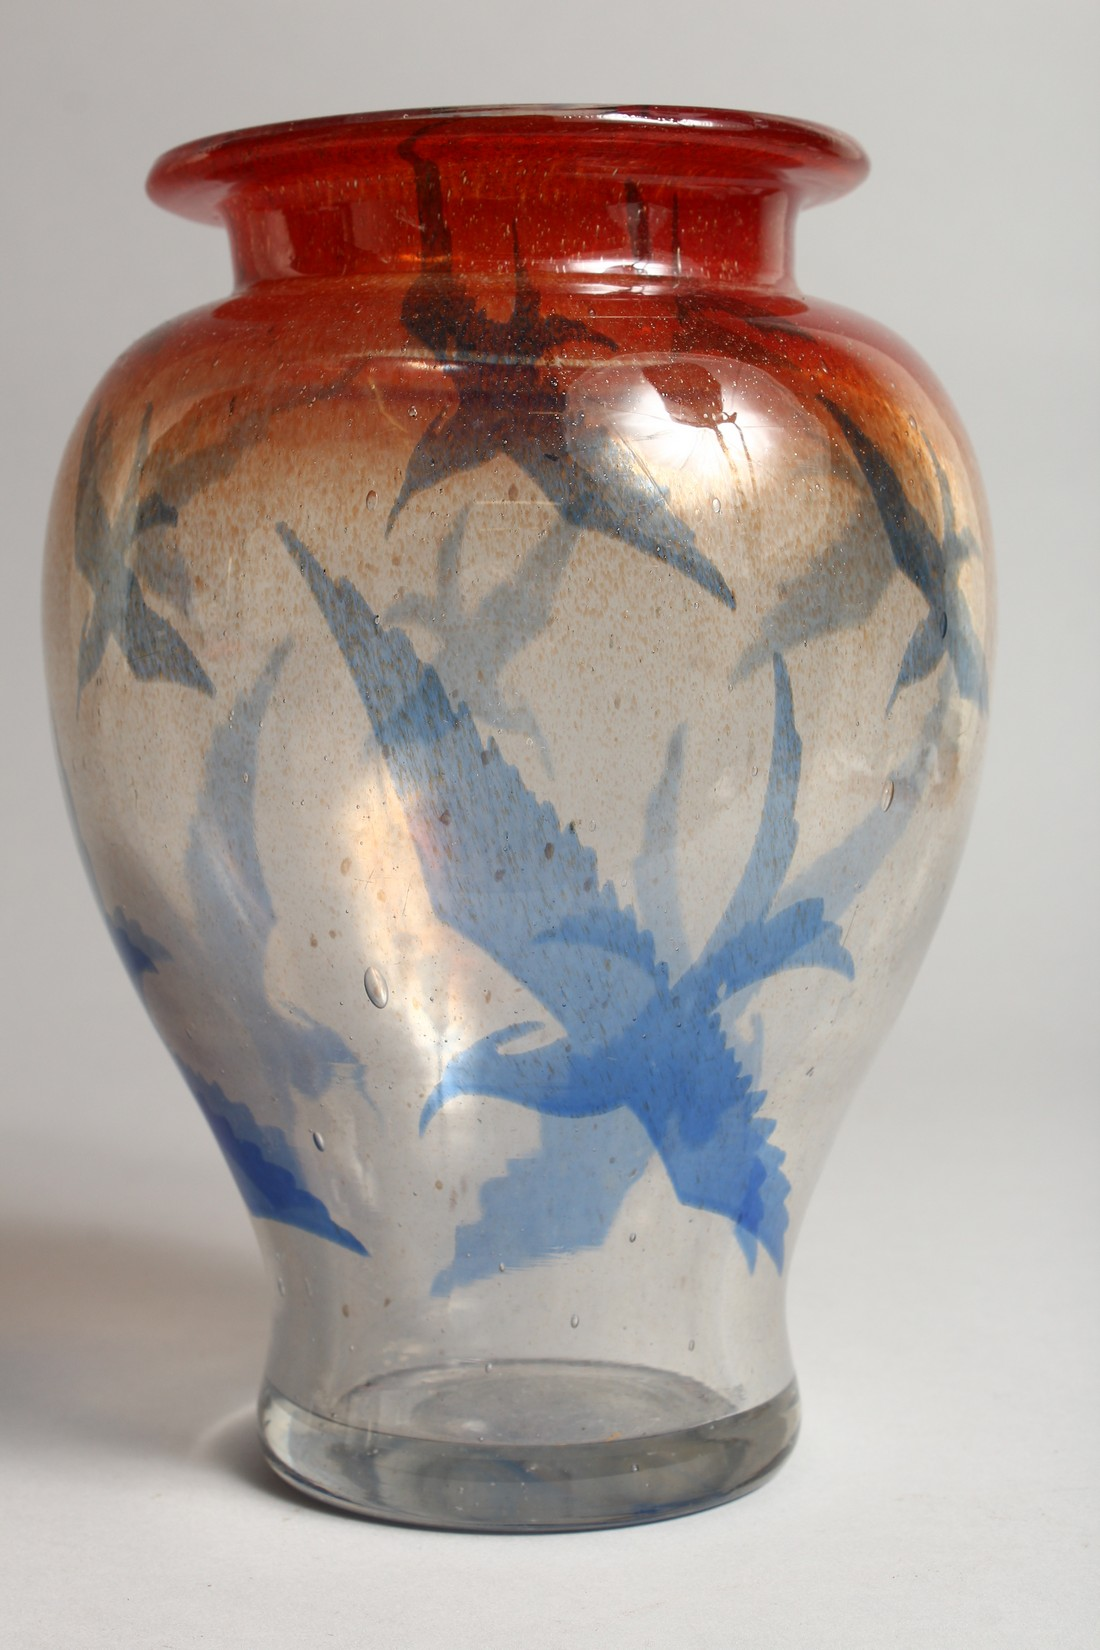 A DANISH ART GLASS VASE, CIRCA 1920, the orange and clear glass body decorated with birds 9.5ins - Image 3 of 6